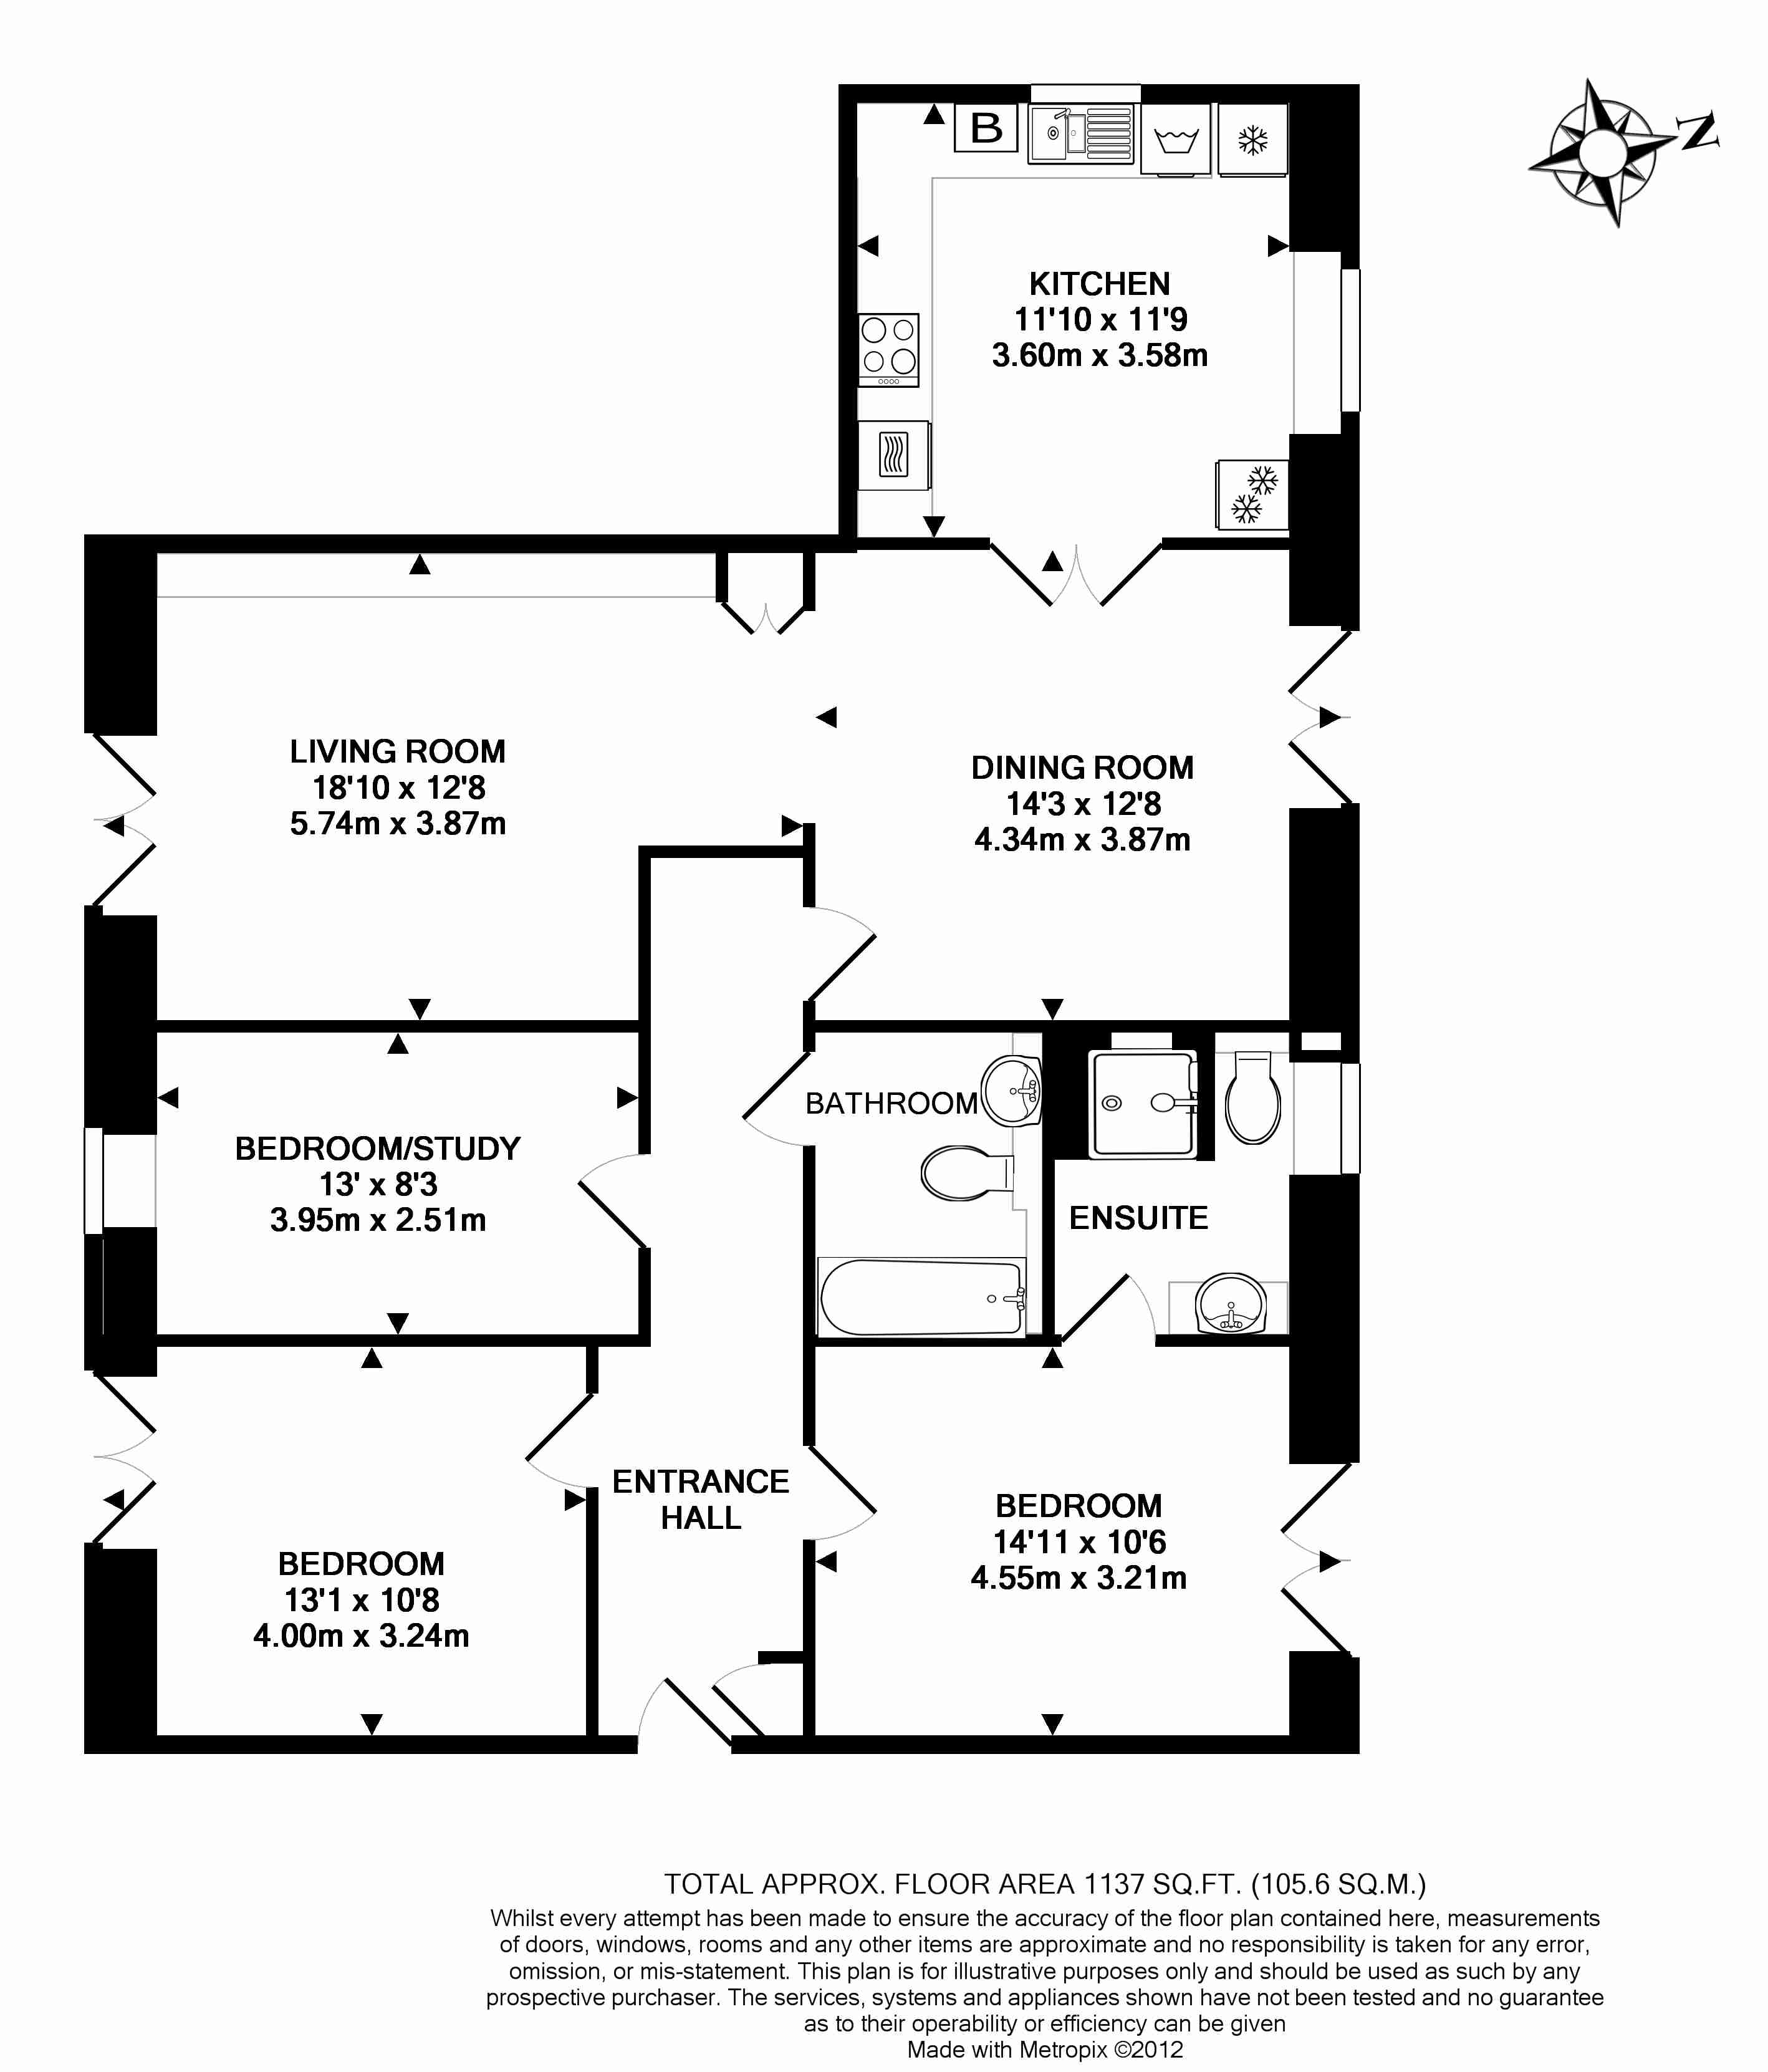 15 Kingfisher Court Floorplan